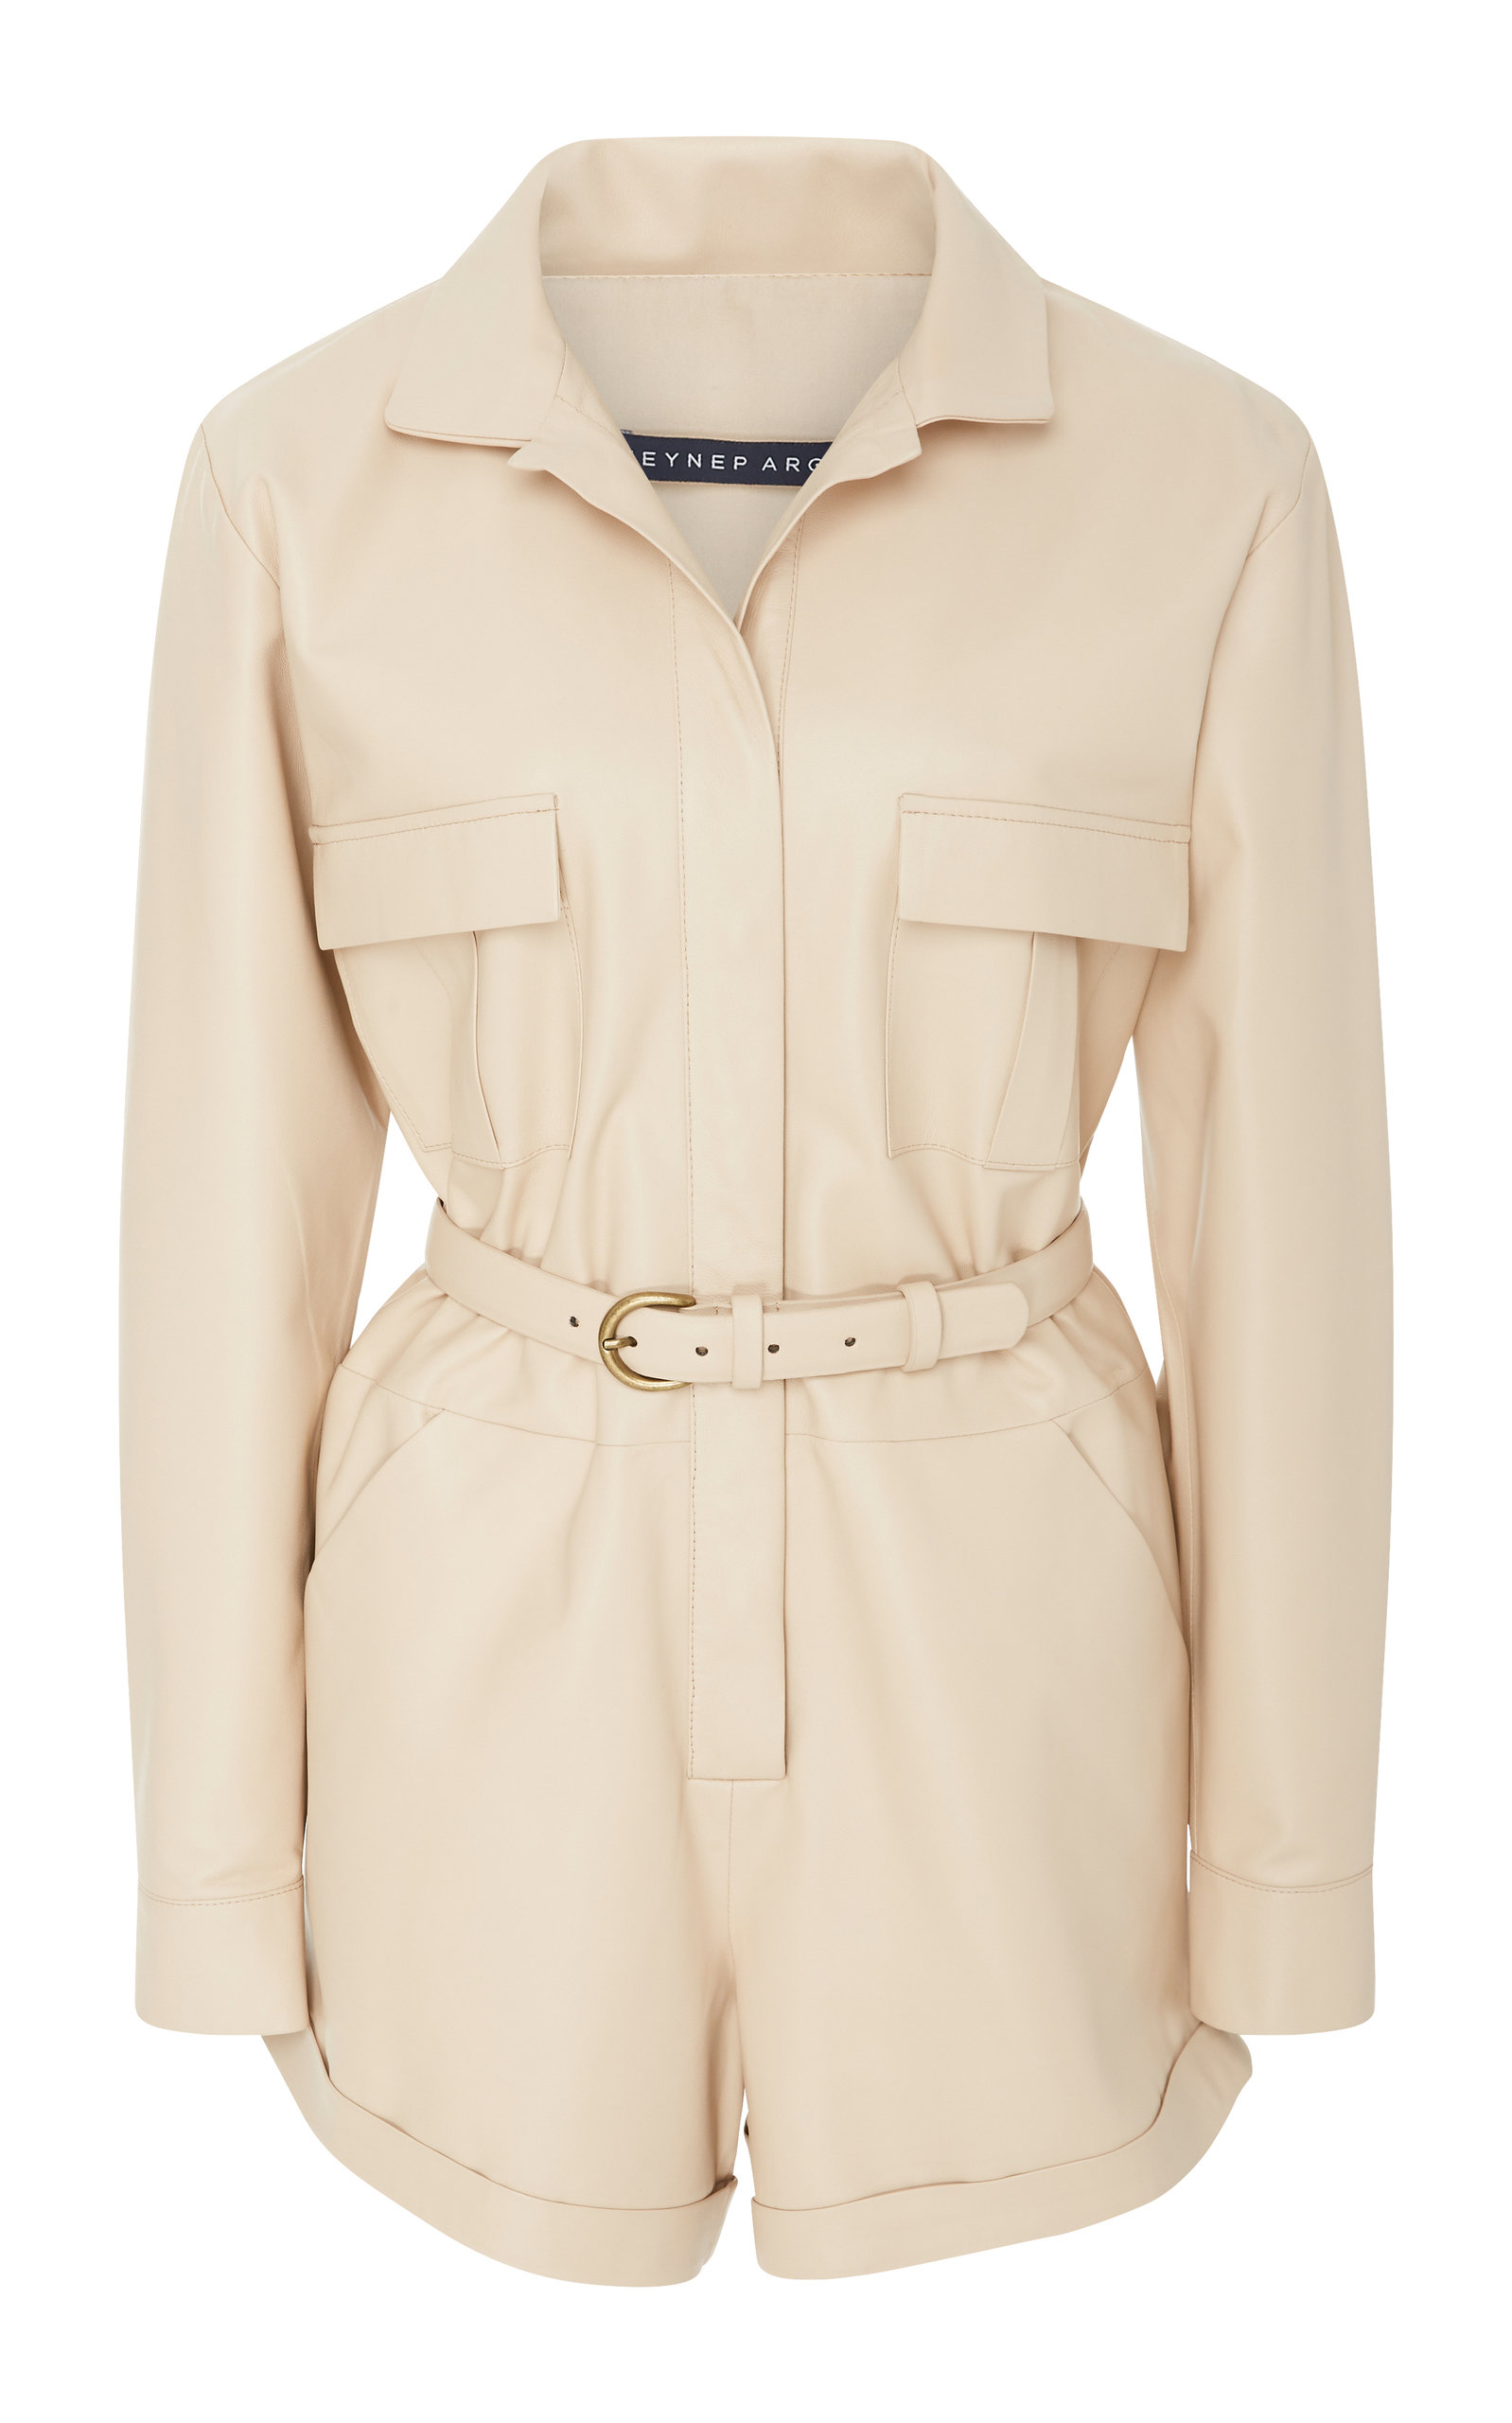 COLLAR LEATHER PLAYSUIT